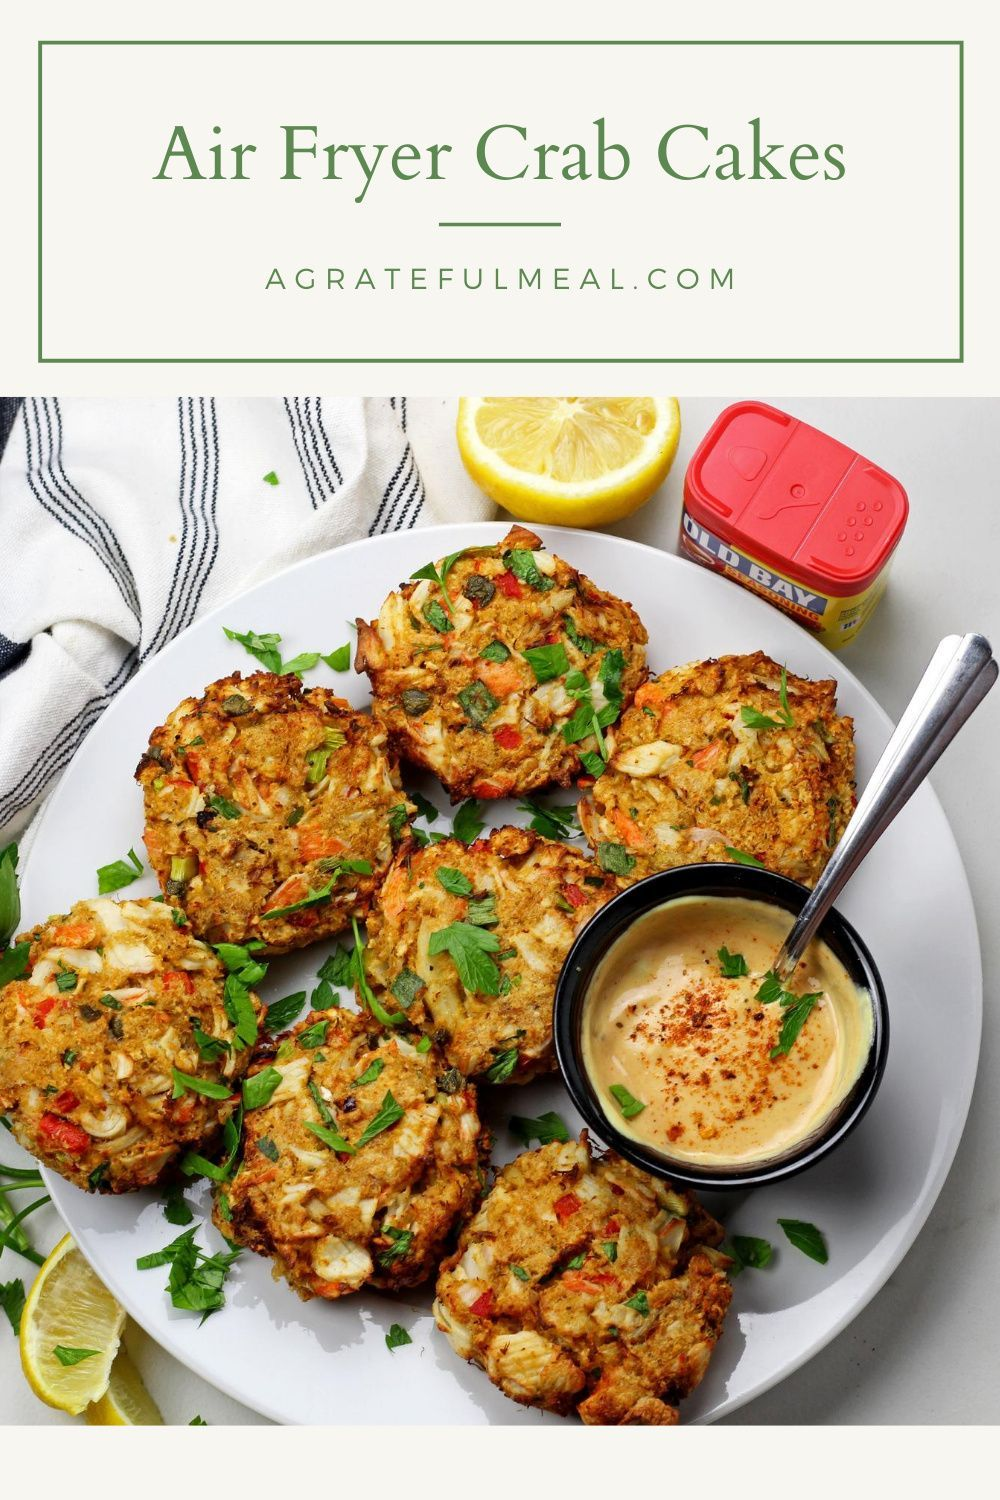 Air fryer crab cakes a grateful meal recipe in 2020